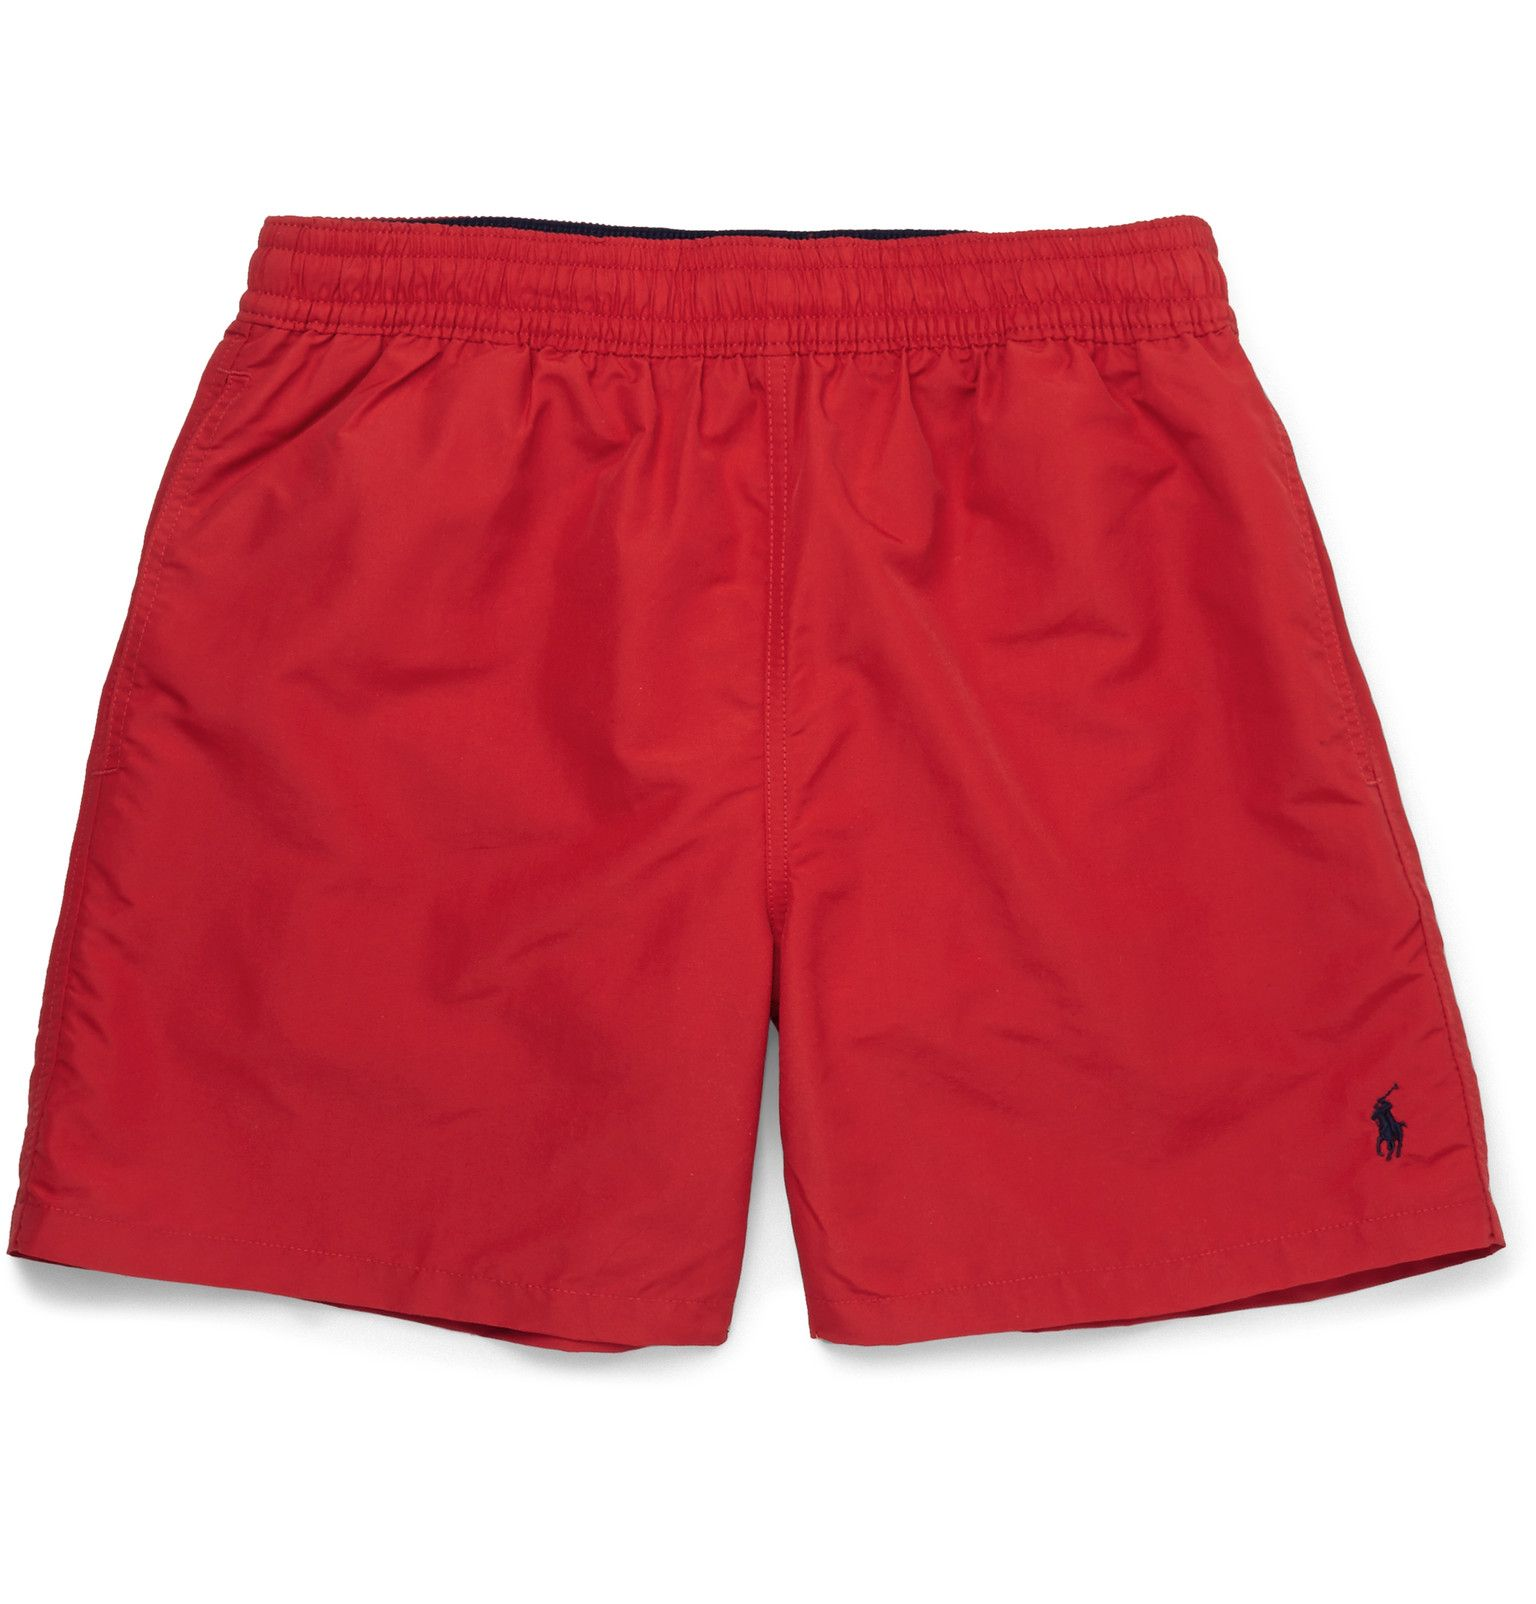 Make a dashing impression on beach-bound days in these bold red swim shorts  by